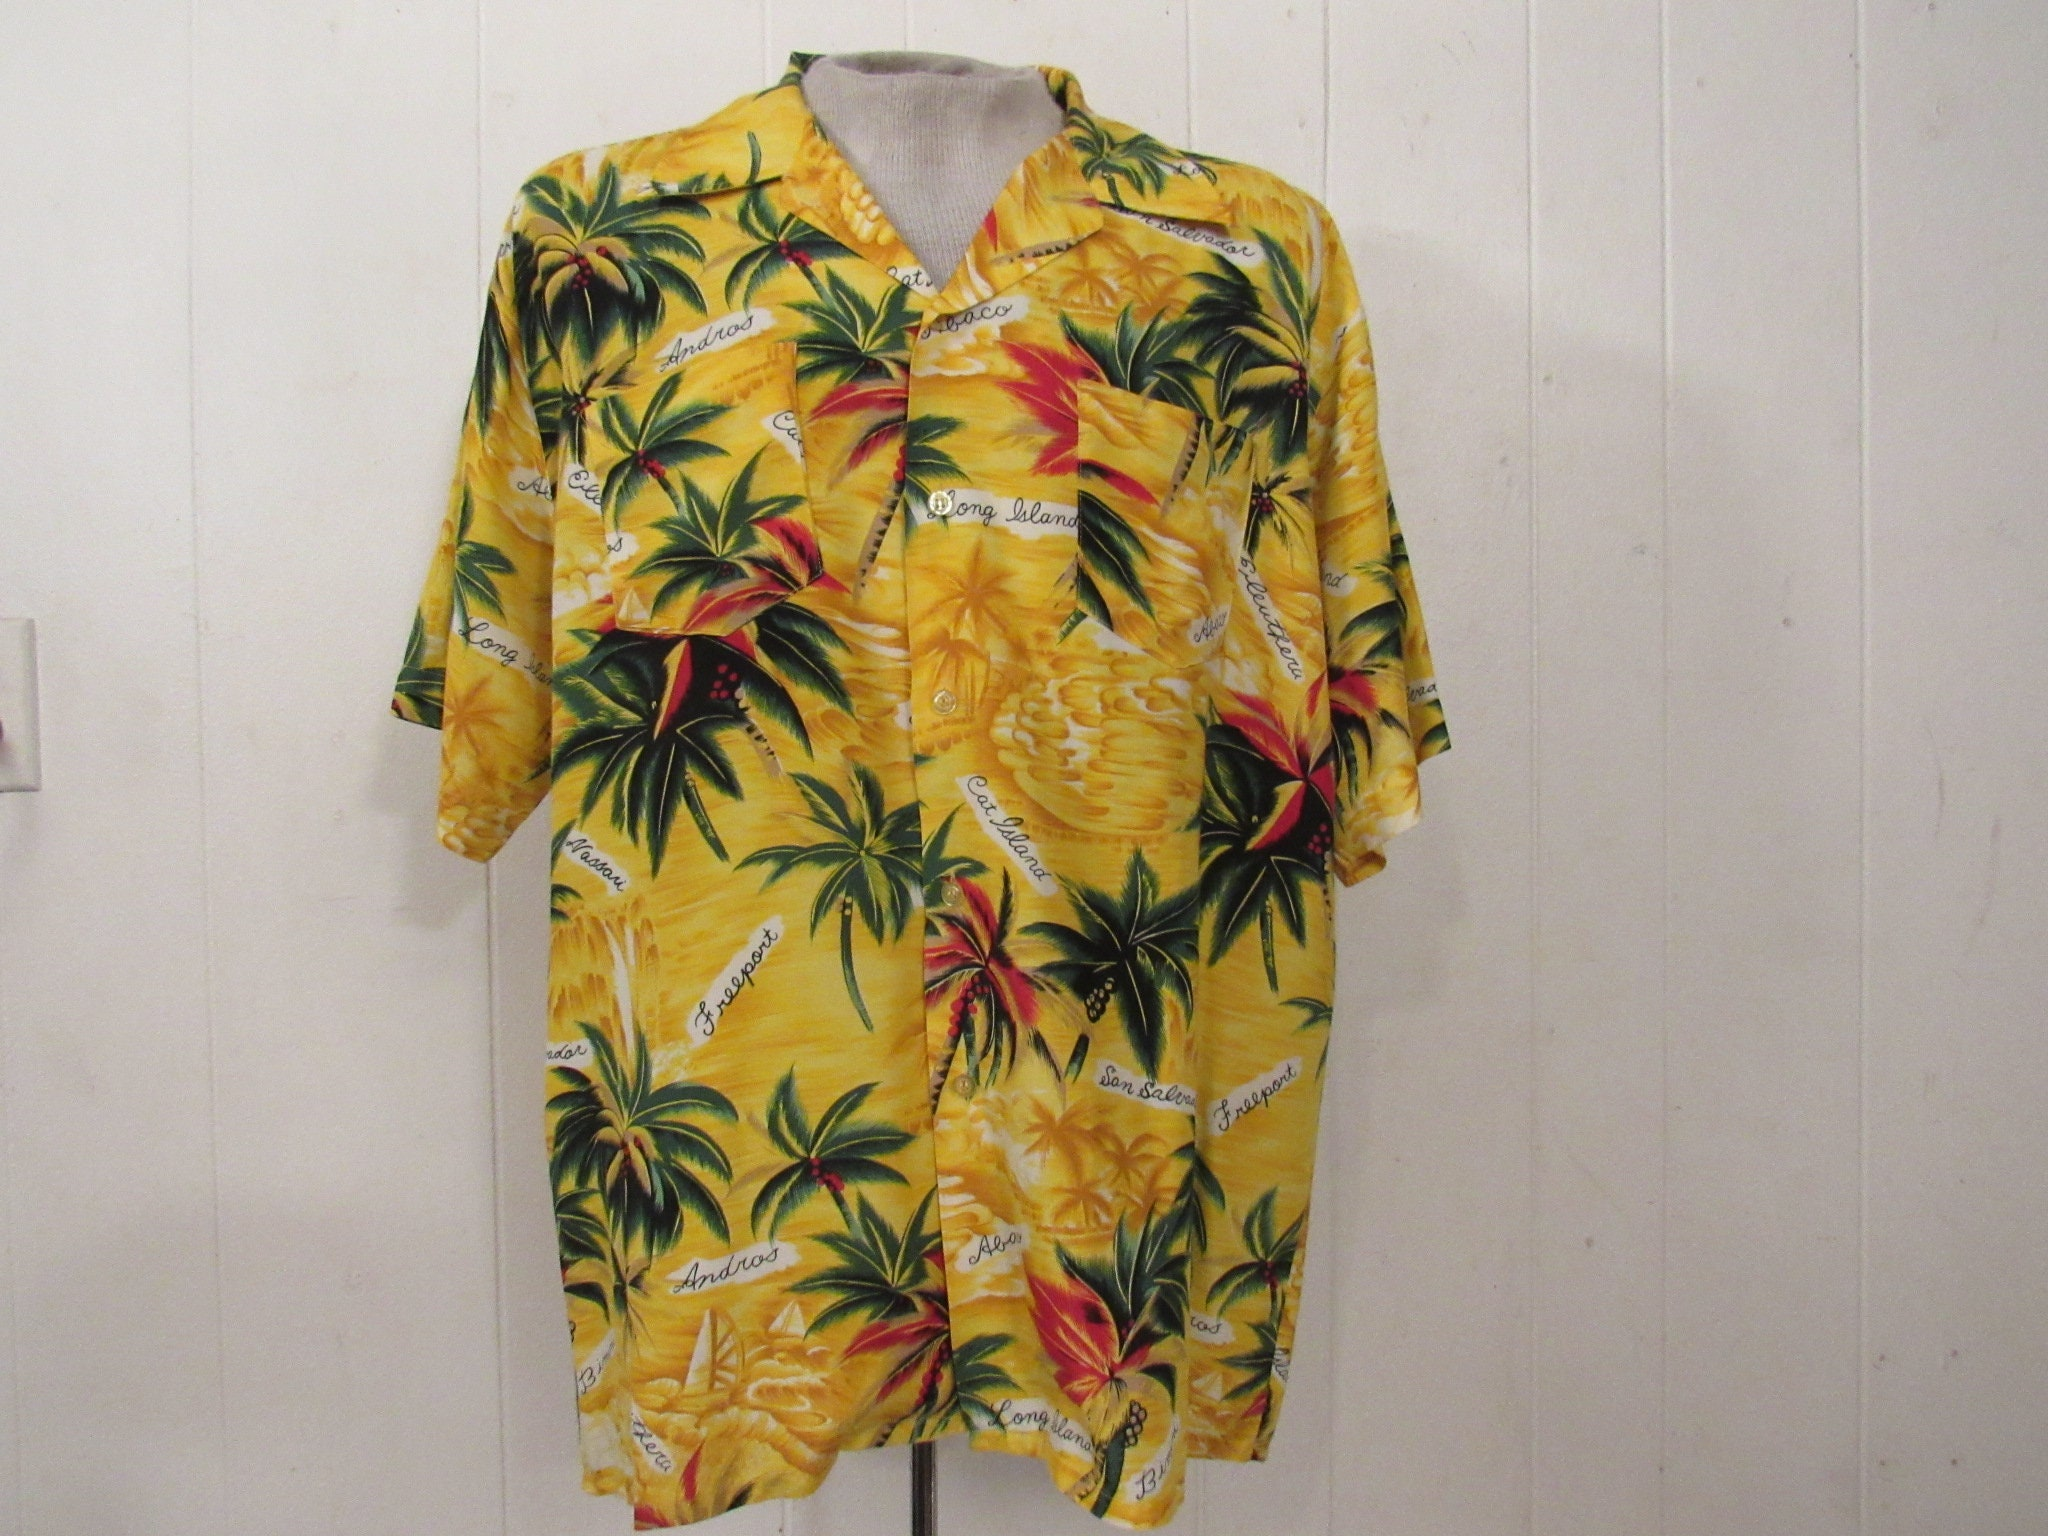 Vintage shirt, Hawaiian shirt, 1980s shirt, Rayon Hawaiian, Rayon shirt,  vintage clothing, XL